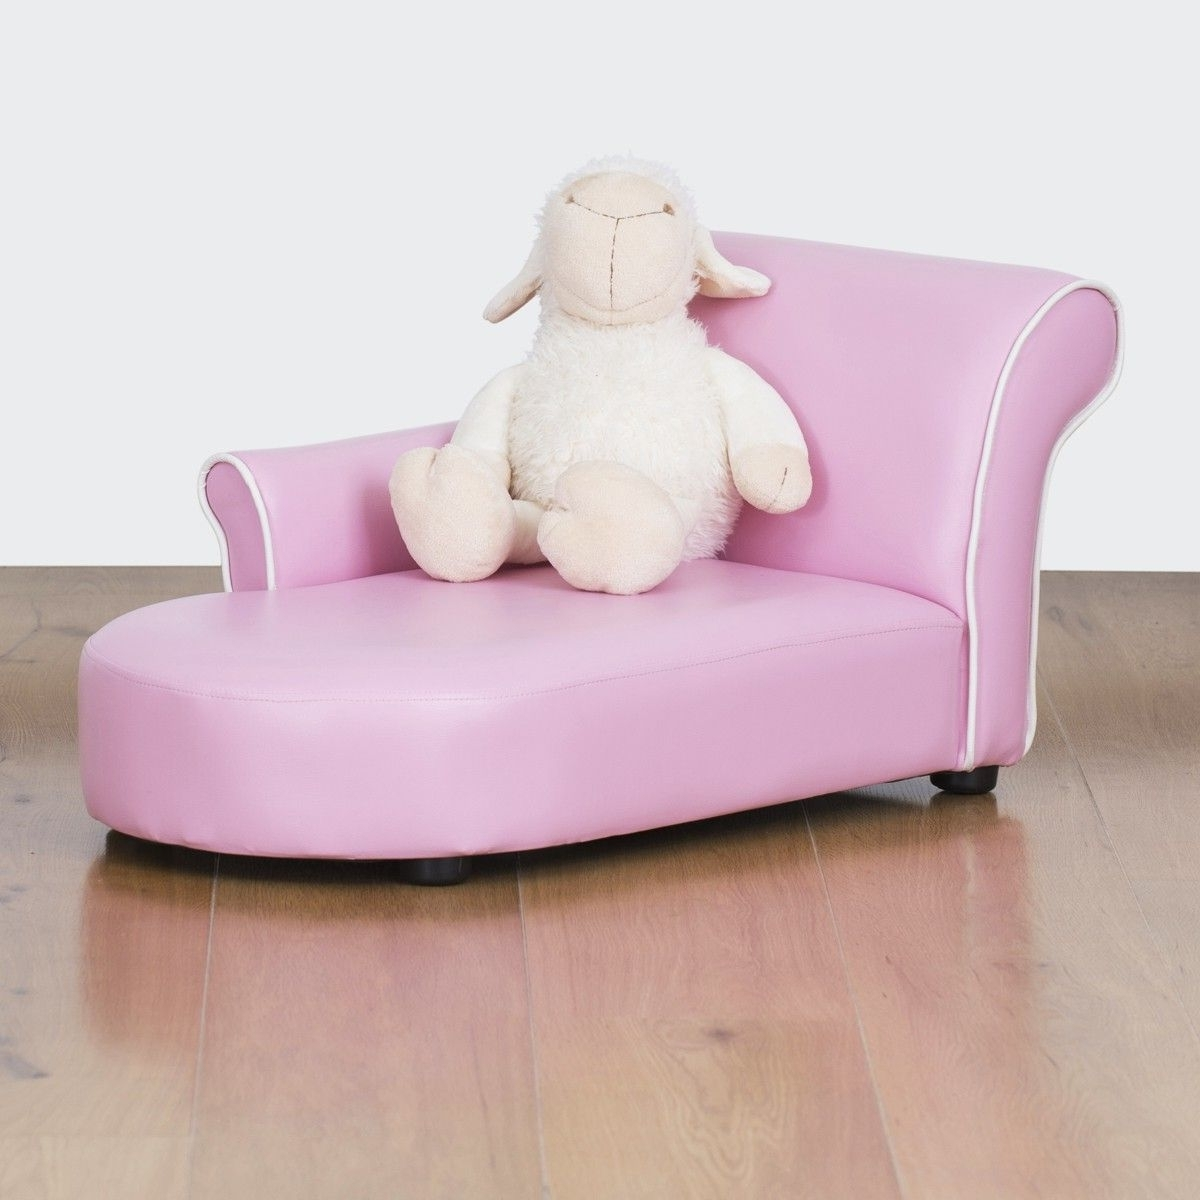 Latest Nice Lovely Kids Lounge Furniture 69 About Remodel Home Decorating Regarding Kids Chaise Lounges (View 2 of 15)